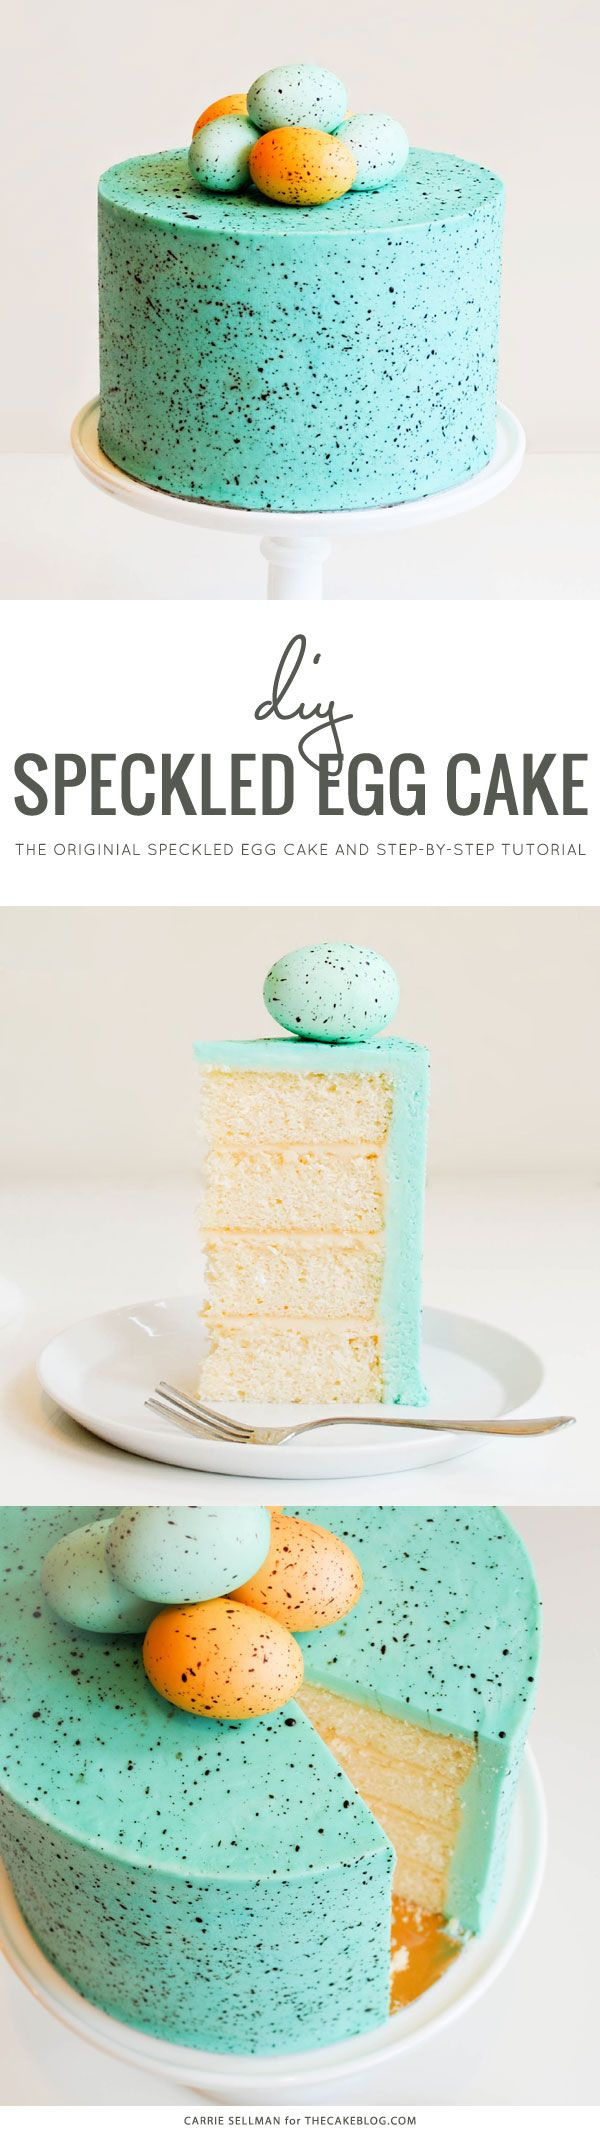 Speckled Egg Cake!